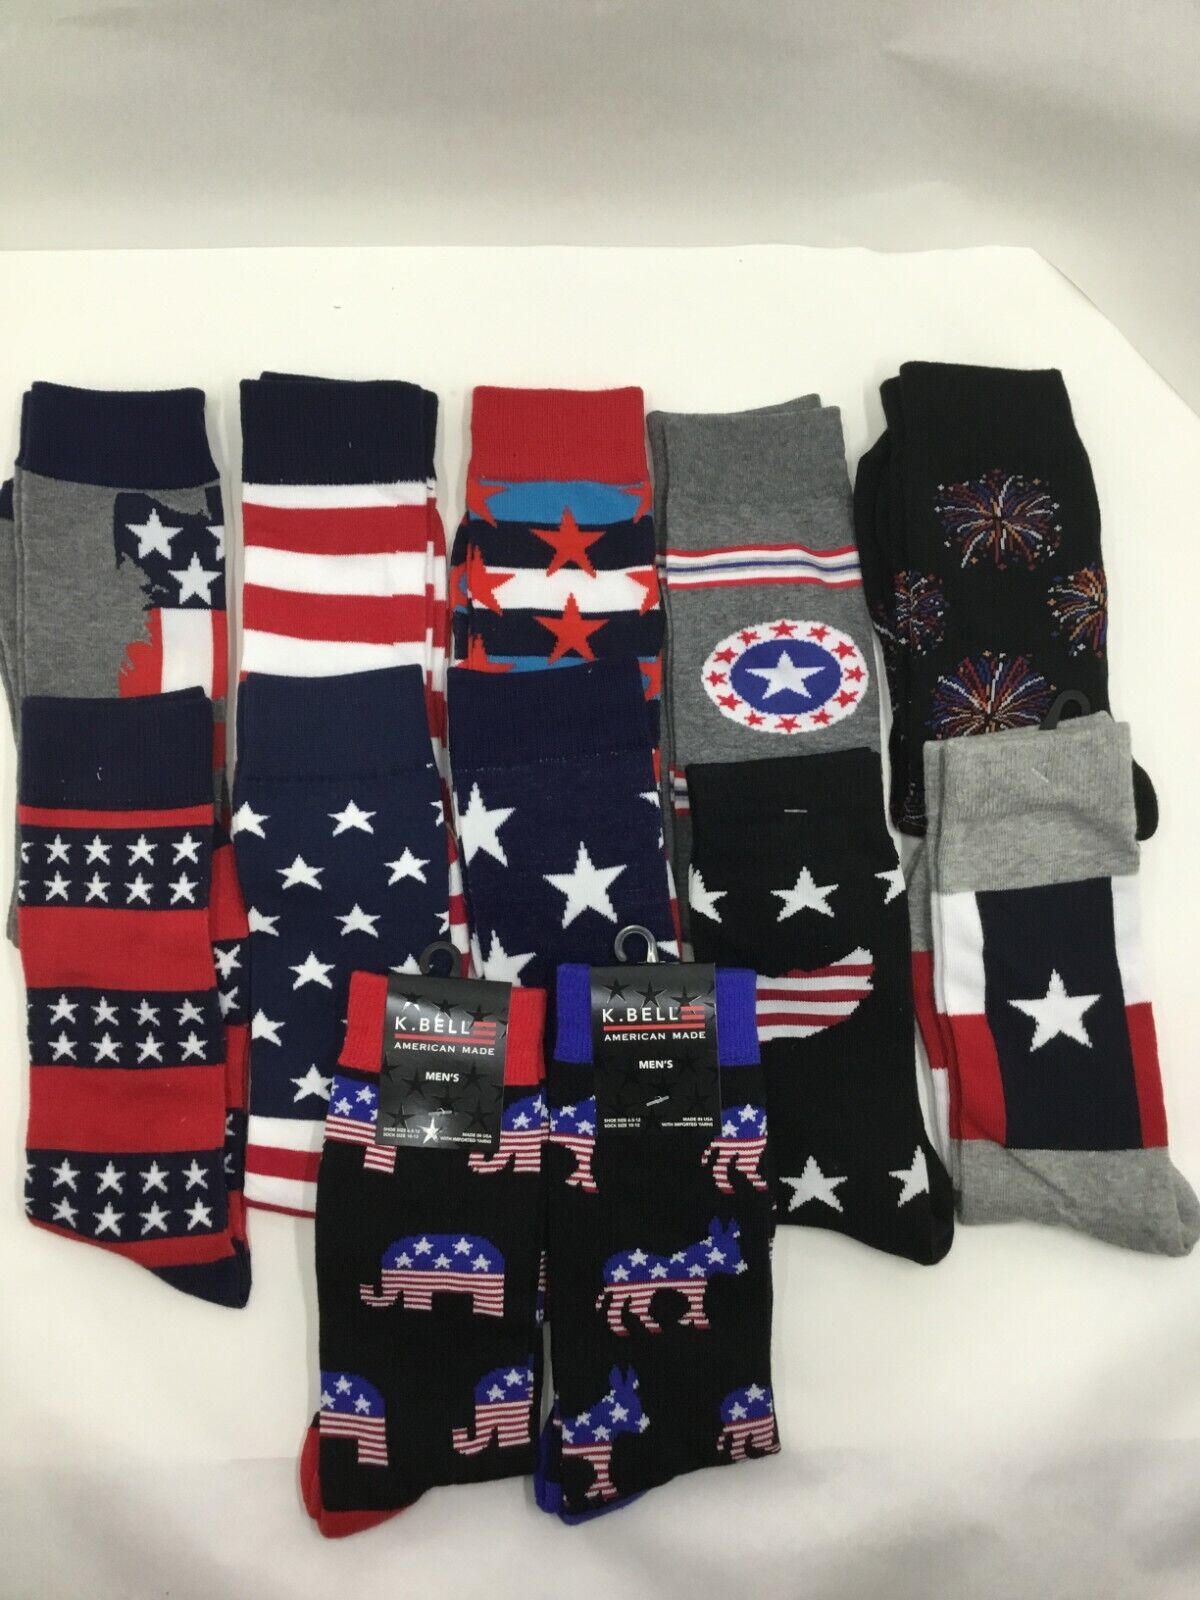 ONE PAIR  K.BELL MADE IN USA NEW  4TH OF JULY  USA   CREW SOCKS MEN SIZE 10-13 Clothing, Shoes & Accessories